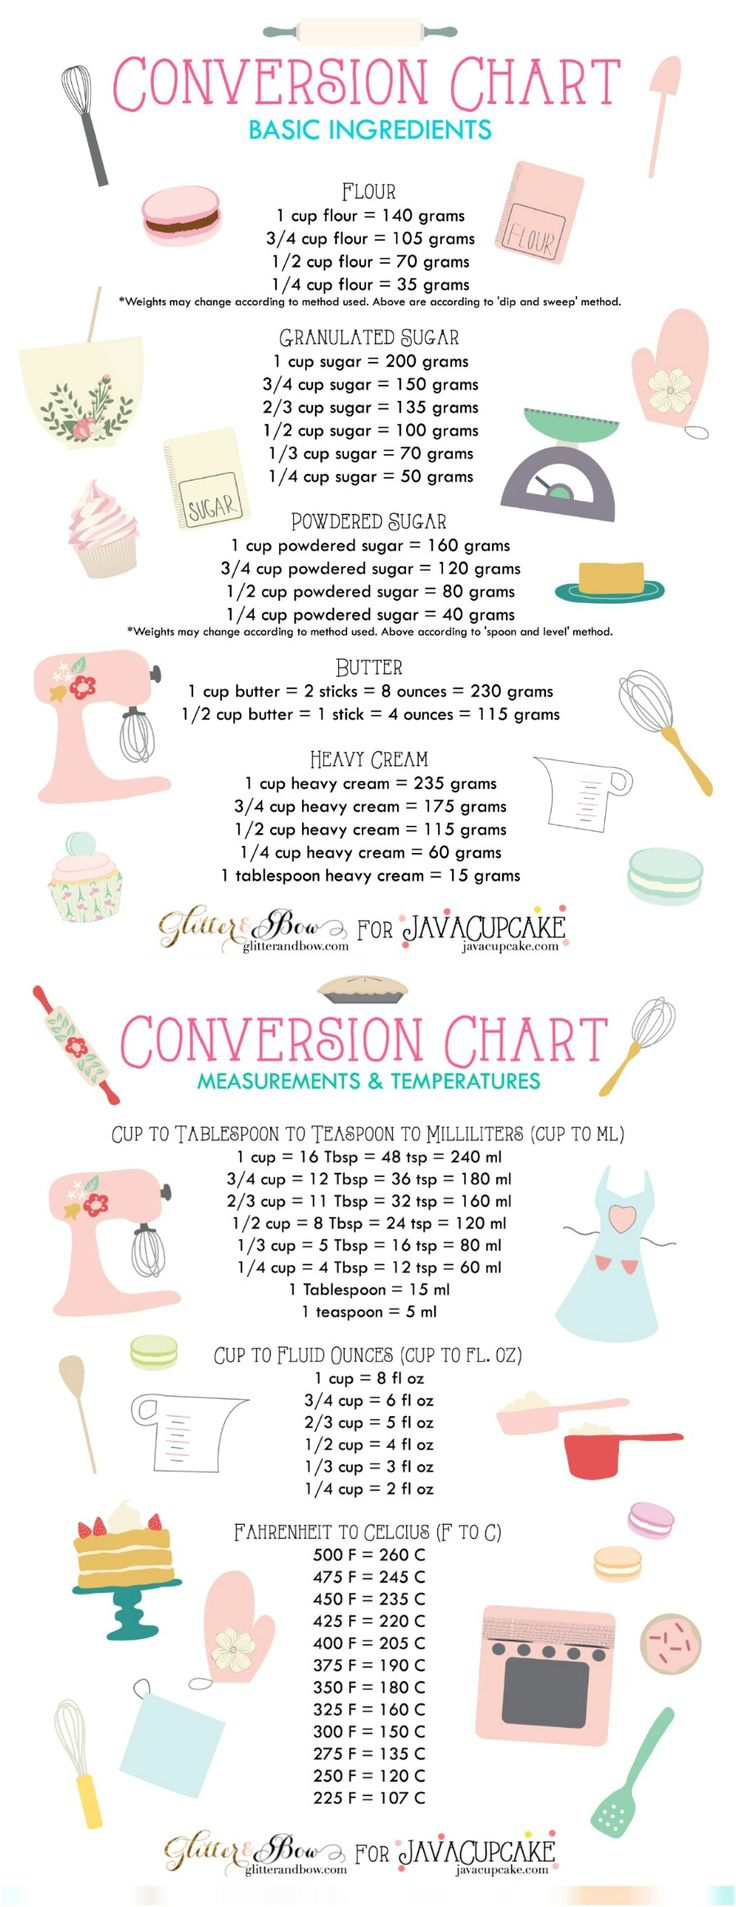 60 Professional Cooking Diagrams and Charts That Simplify Cooking - Page 3...